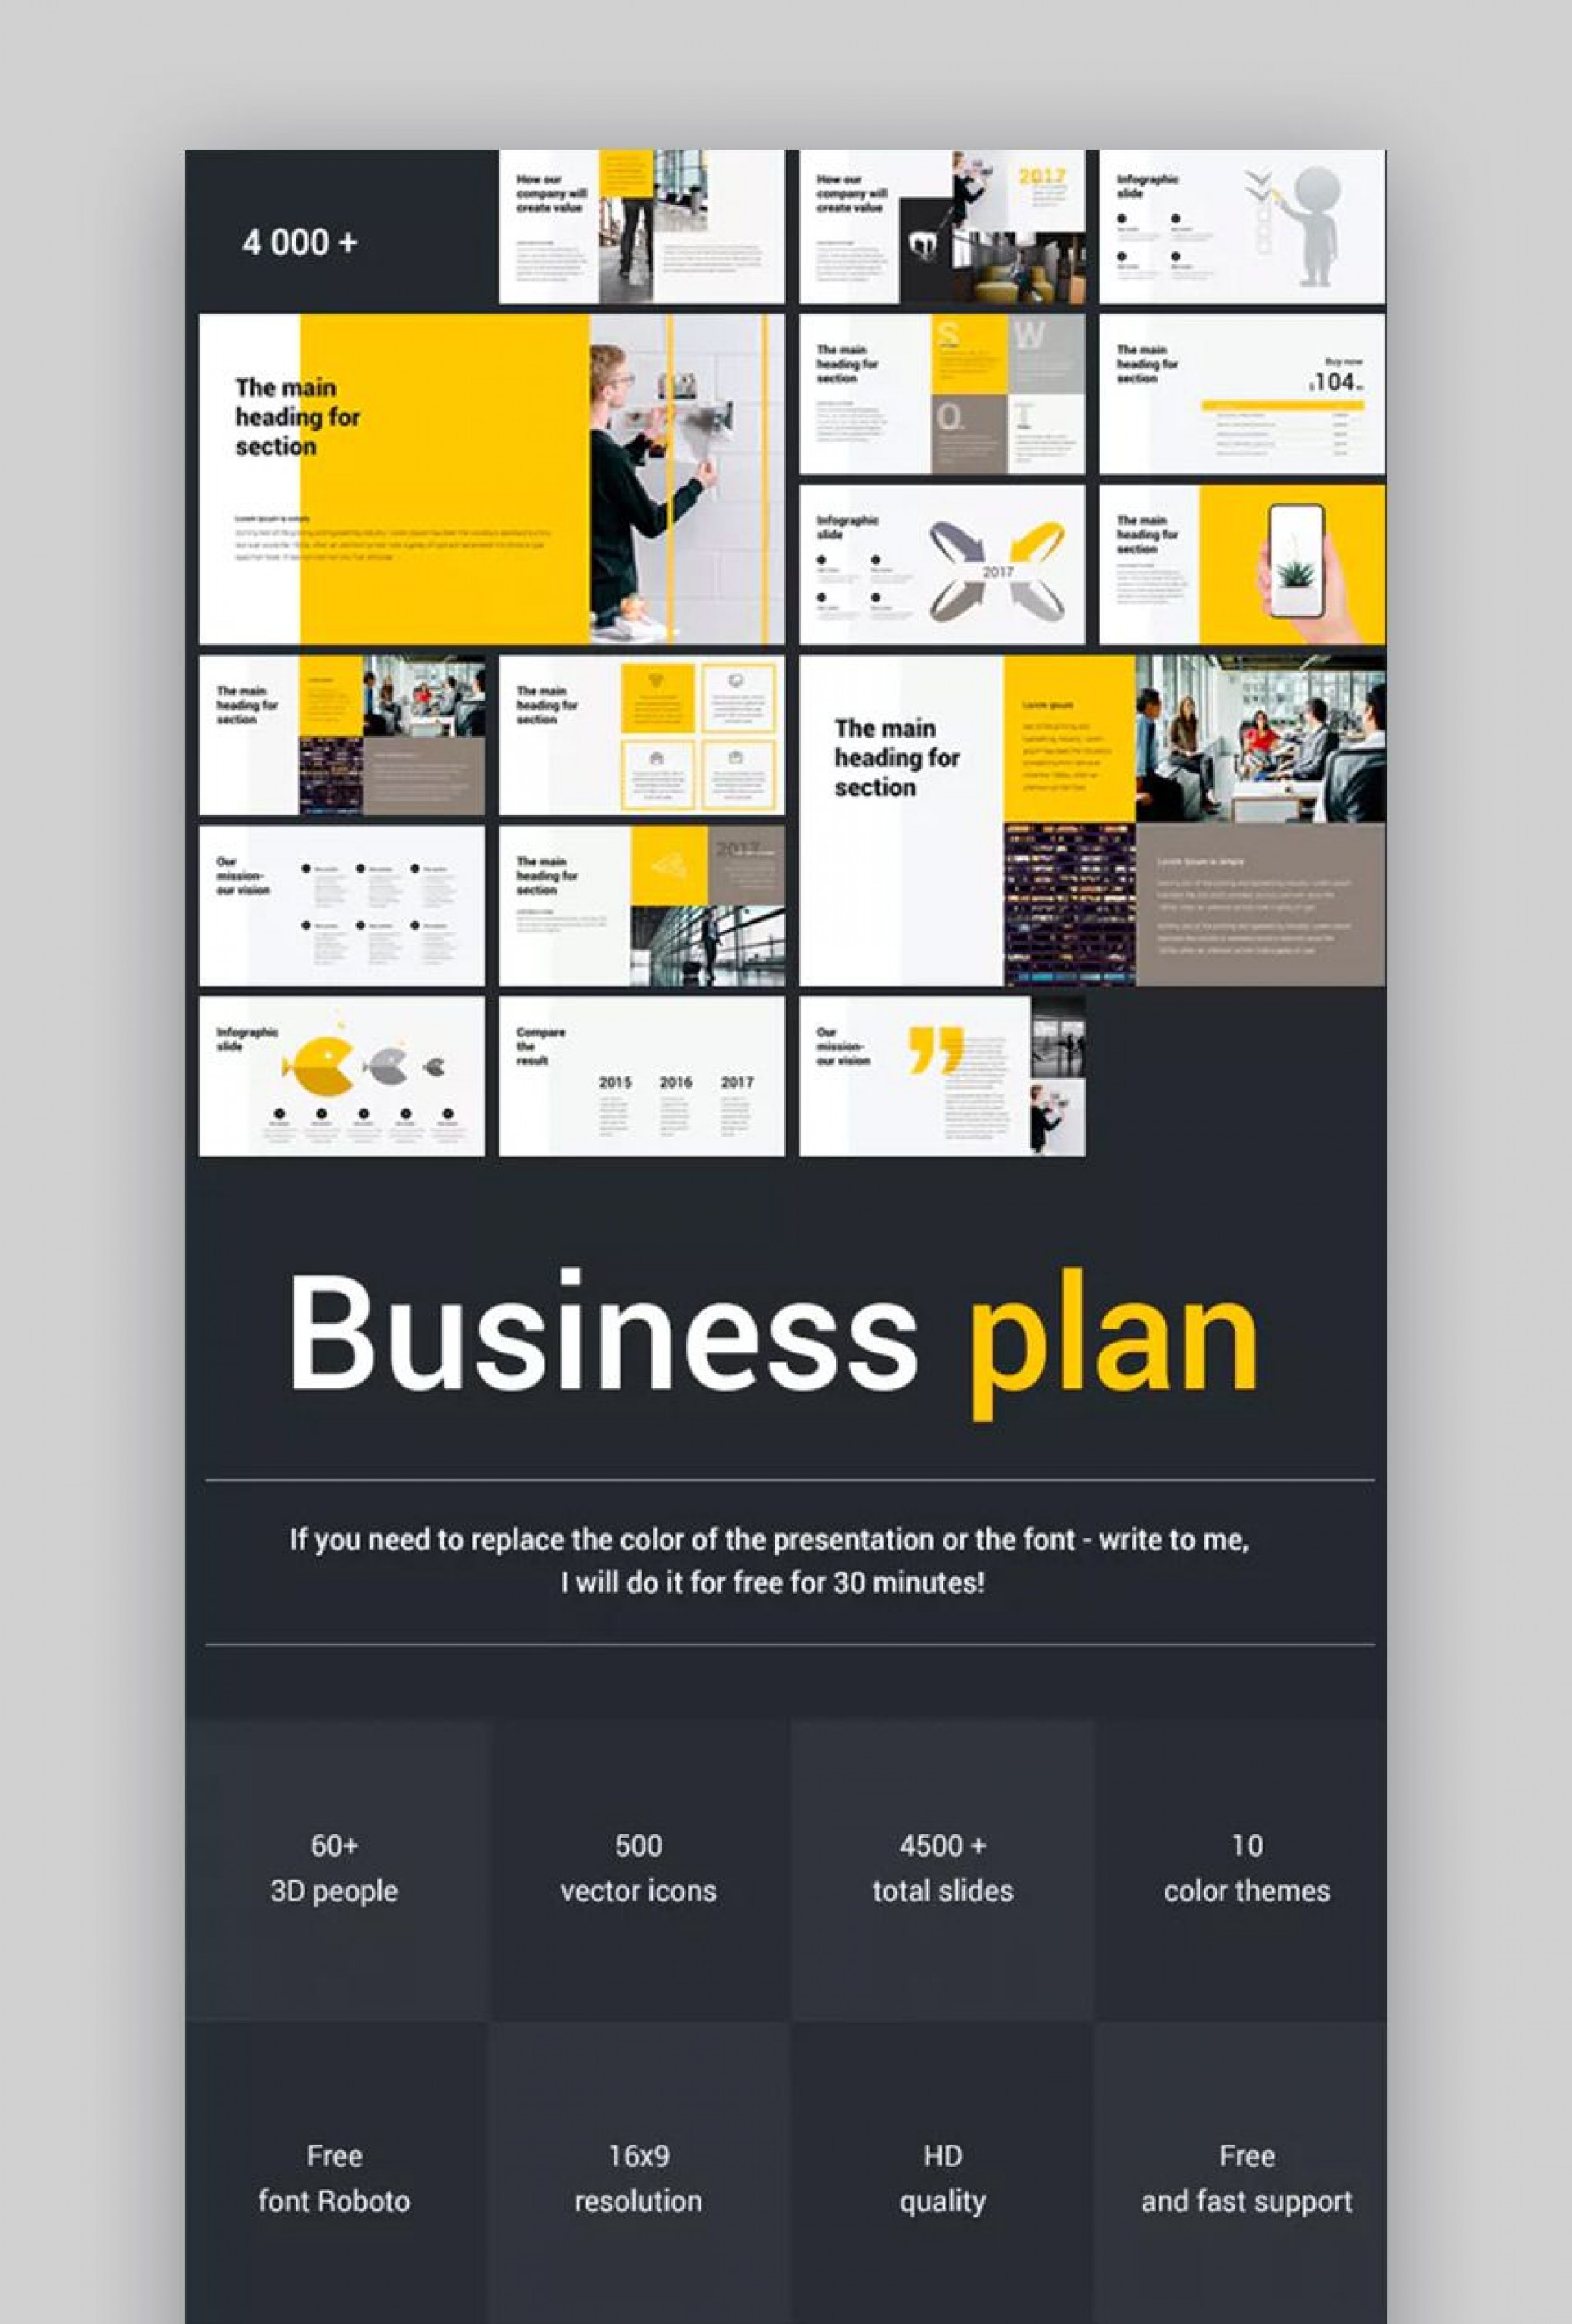 003 Unforgettable Free Busines Plan Powerpoint Template Download Highest Quality  Modern Ultimate1920